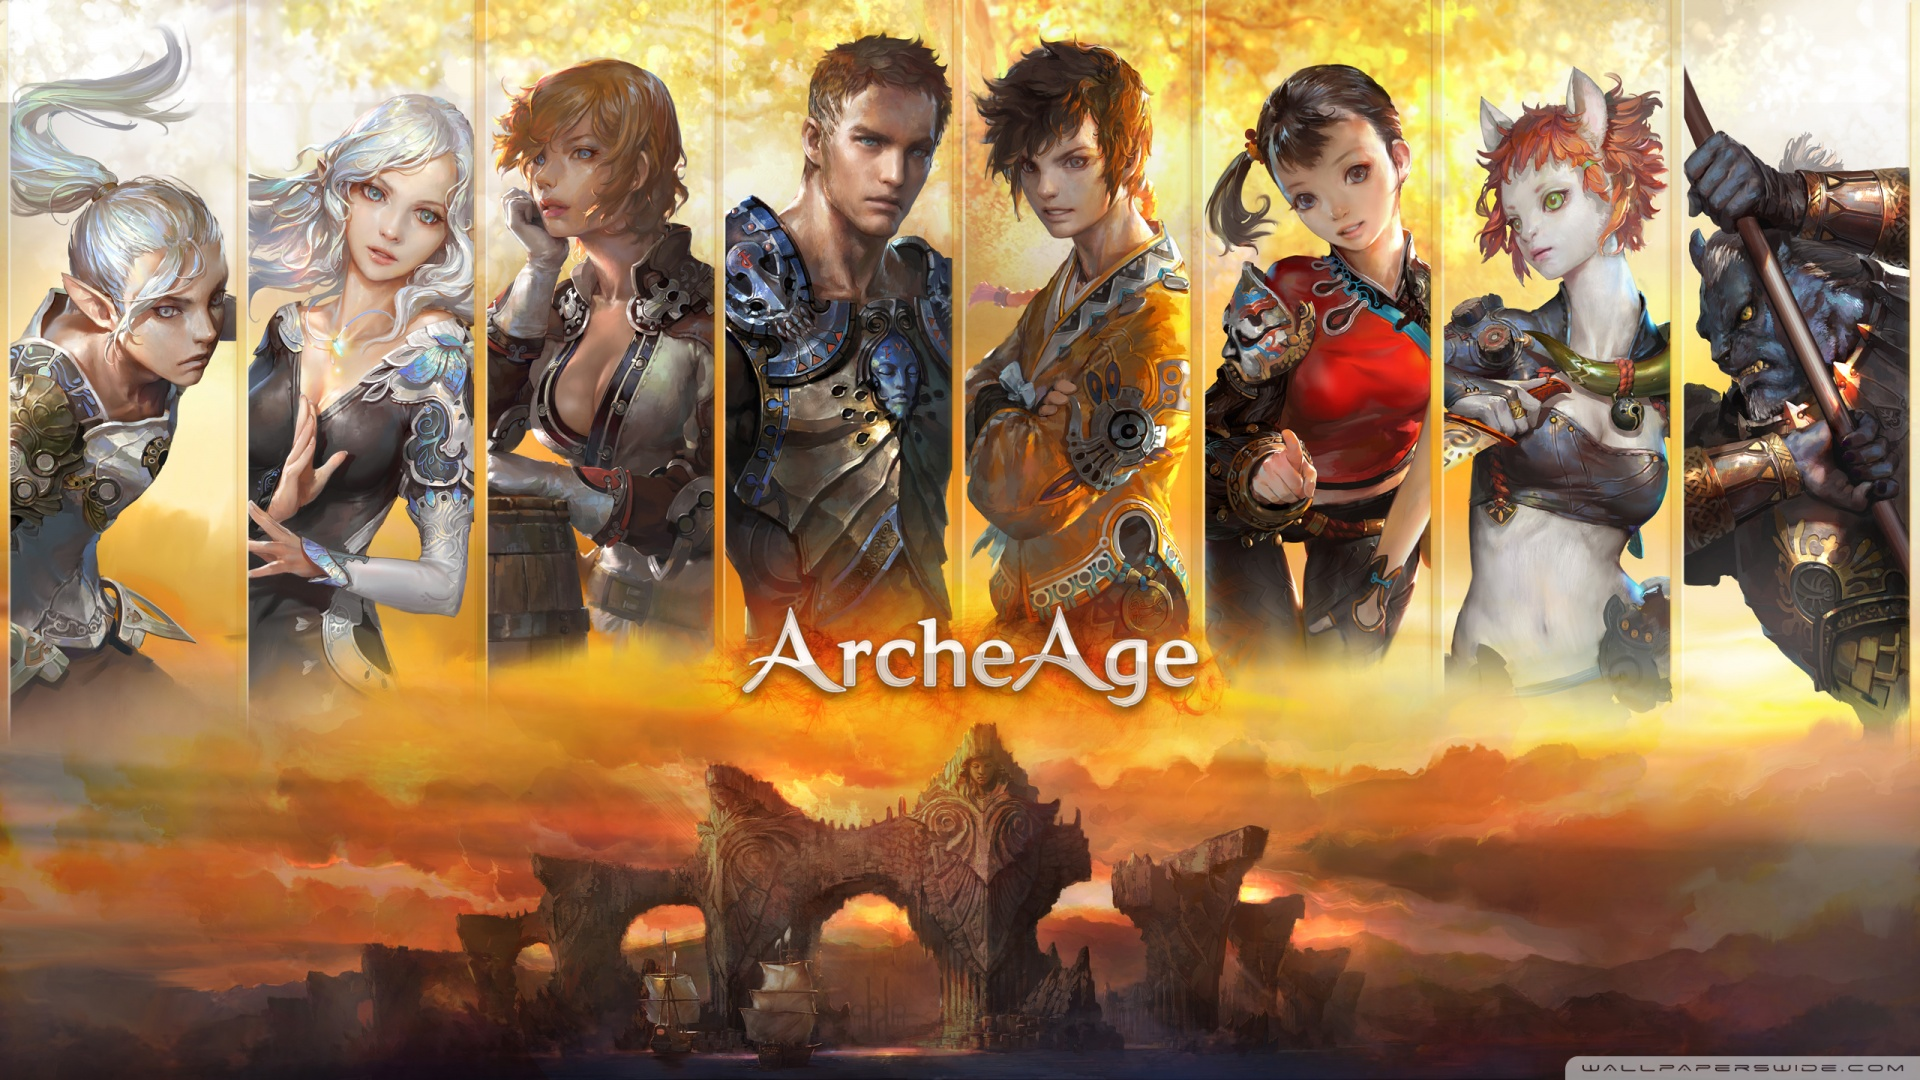 1920x1080 - ArcheAge HD Wallpapers 24